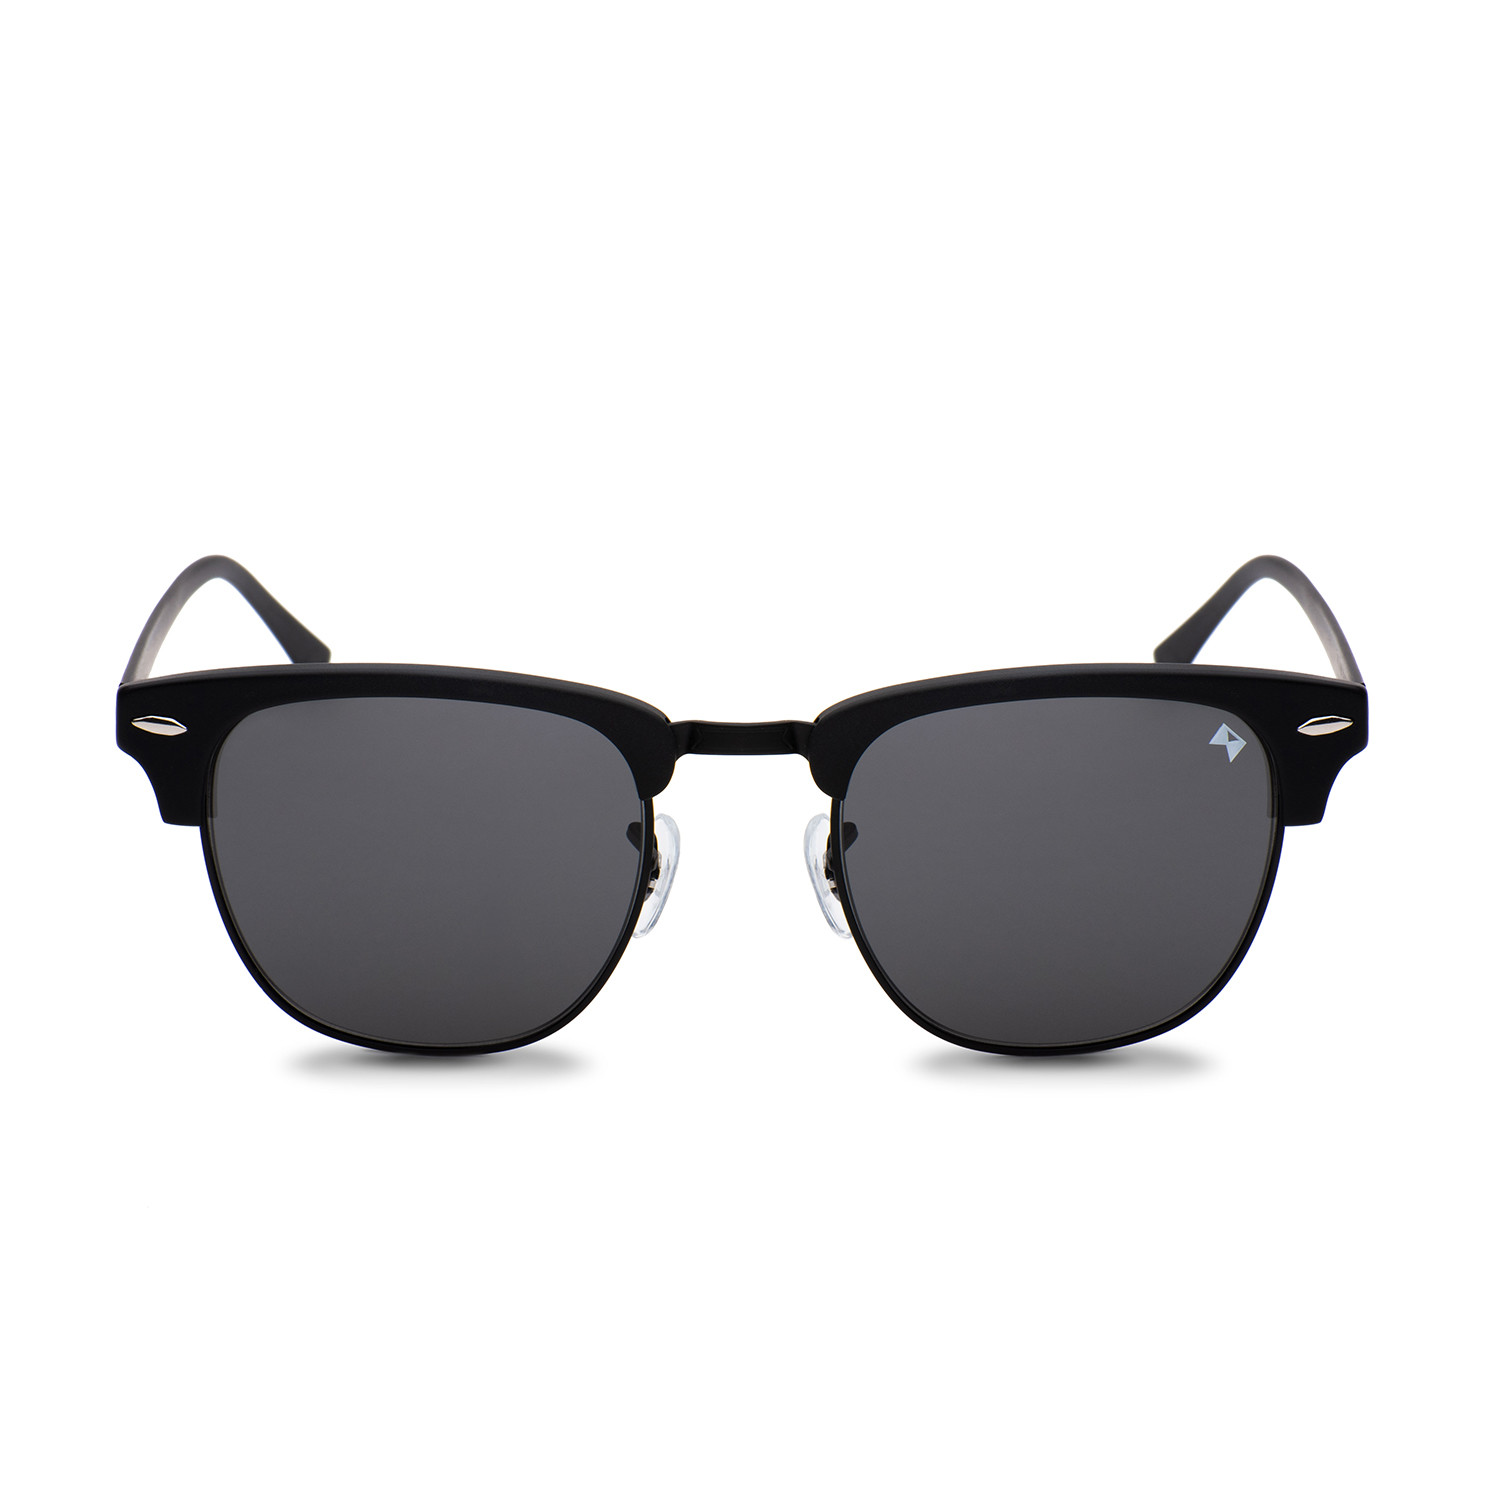 1bbae0acc1b The Empire (Black Black) - William Painter Sunglasses - Touch of Modern